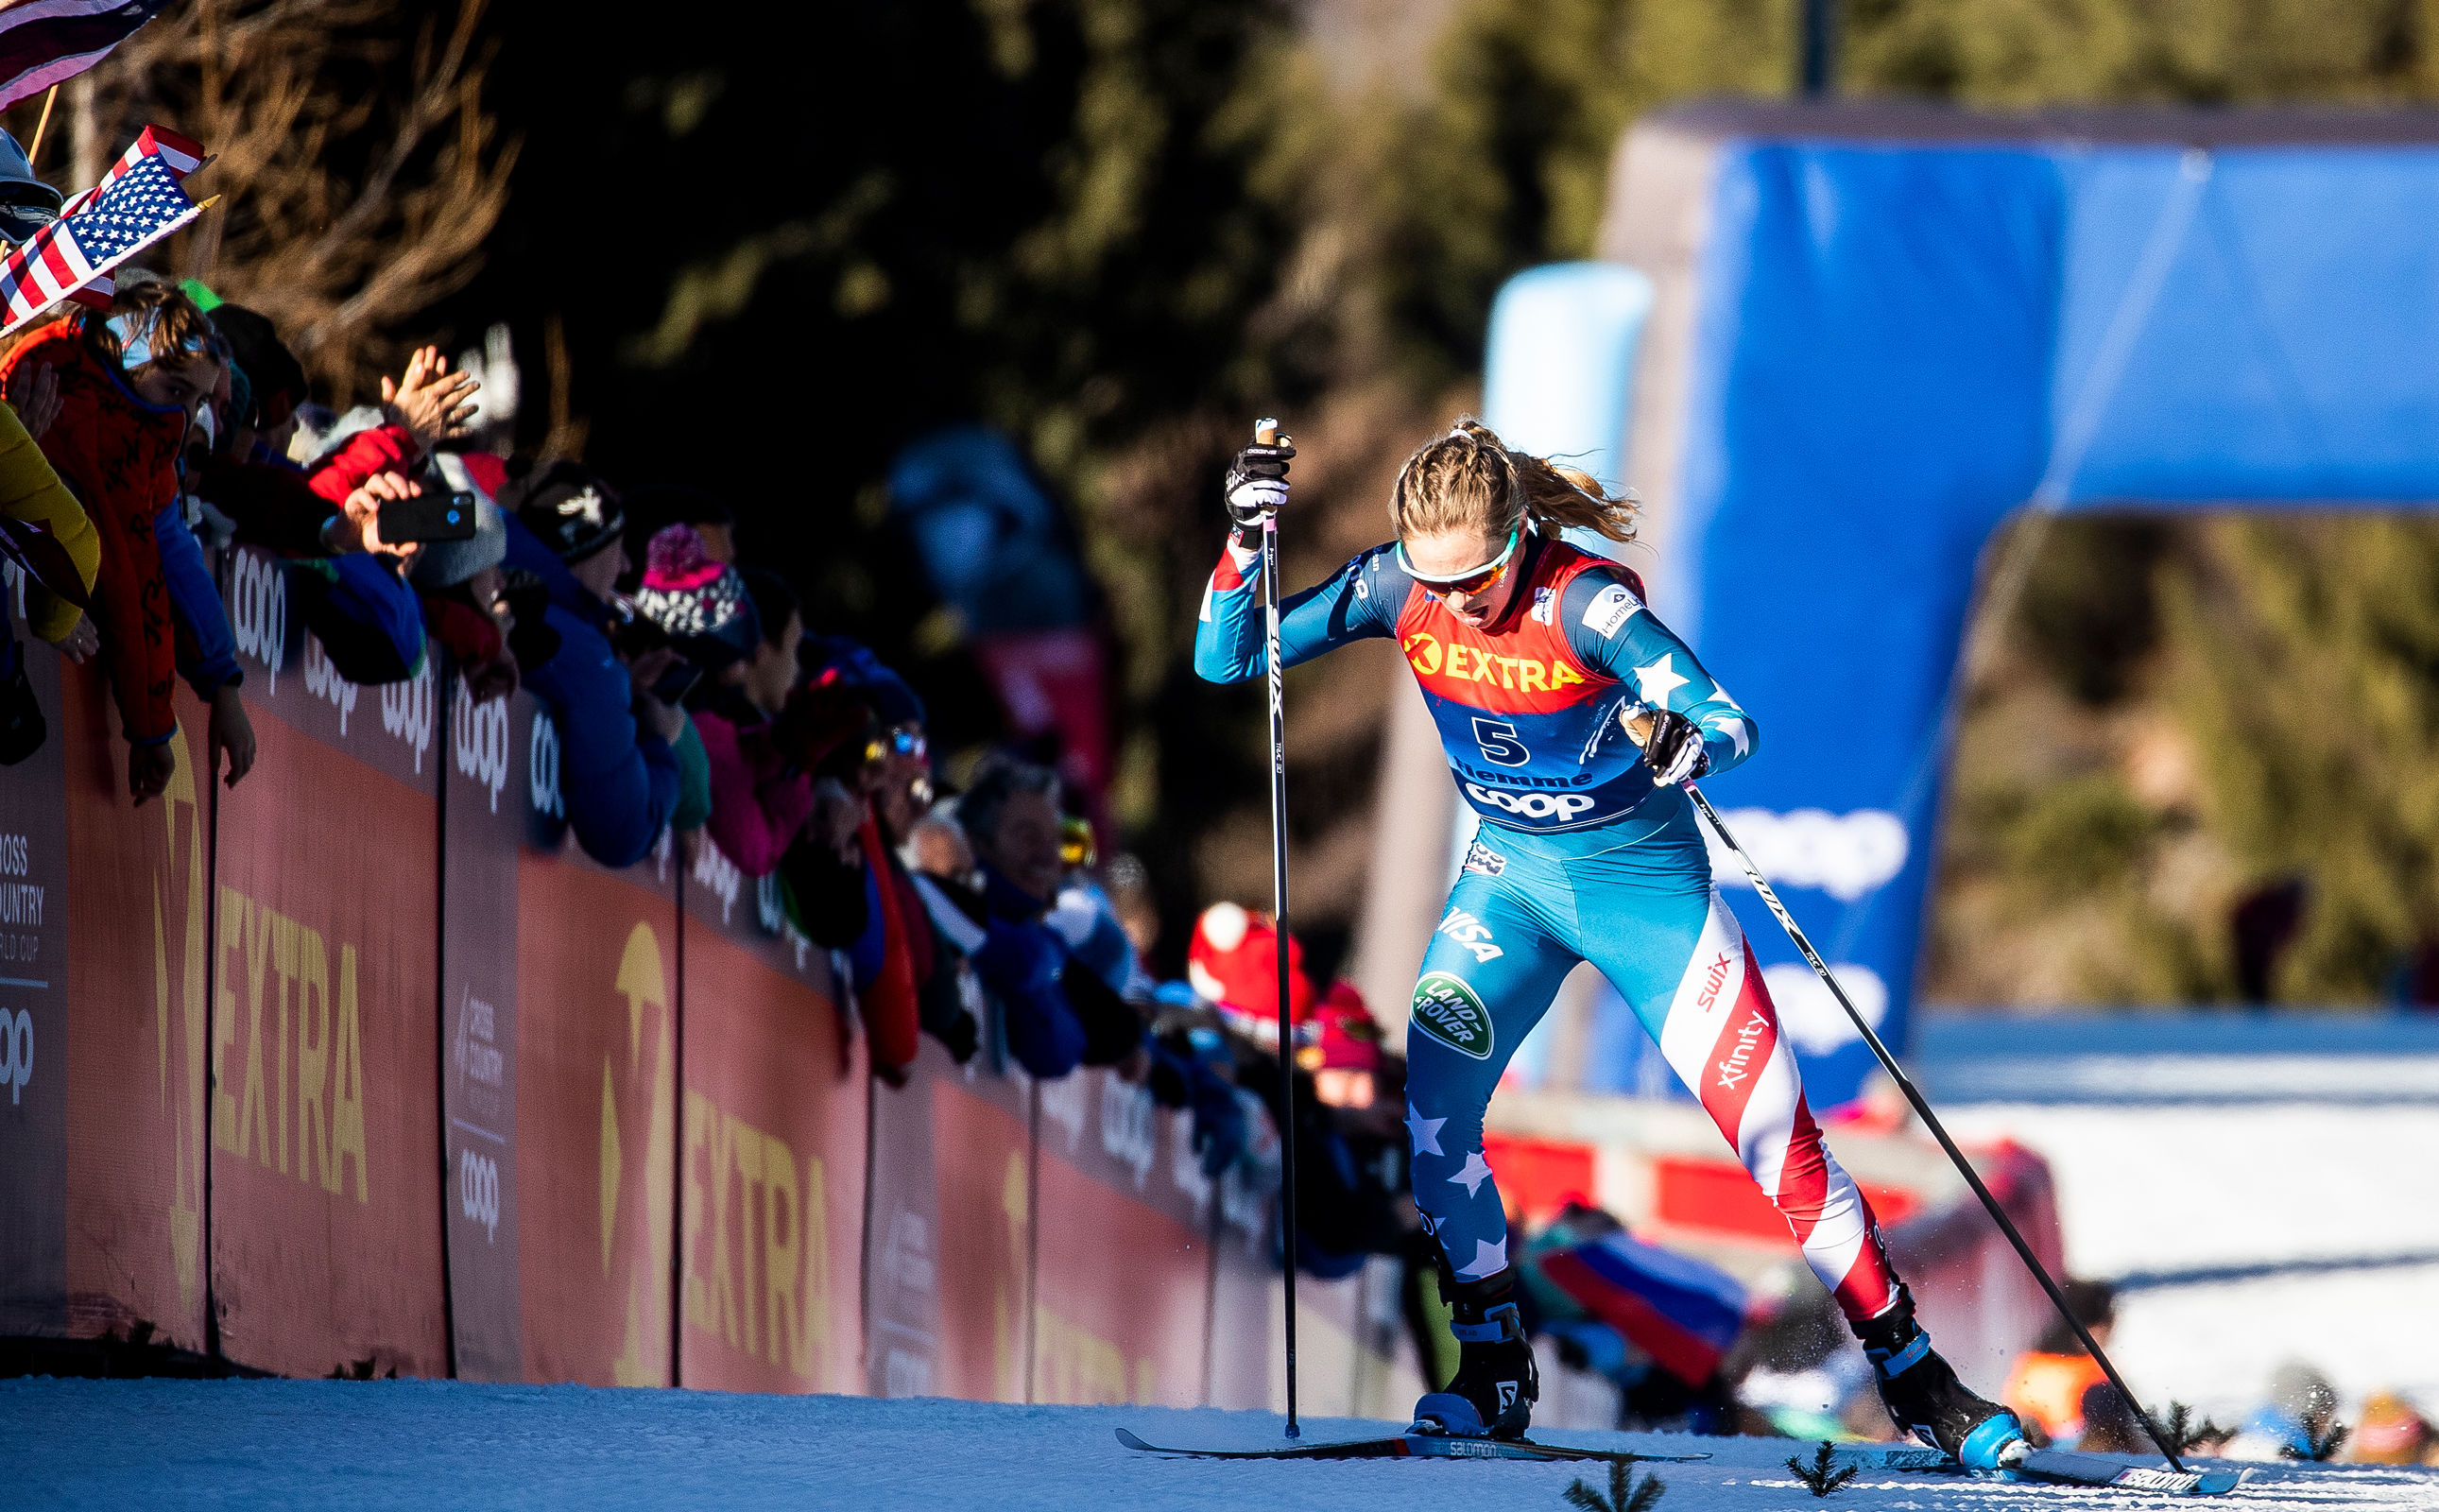 Three Americans In Top 15 Overall At Tour De Ski